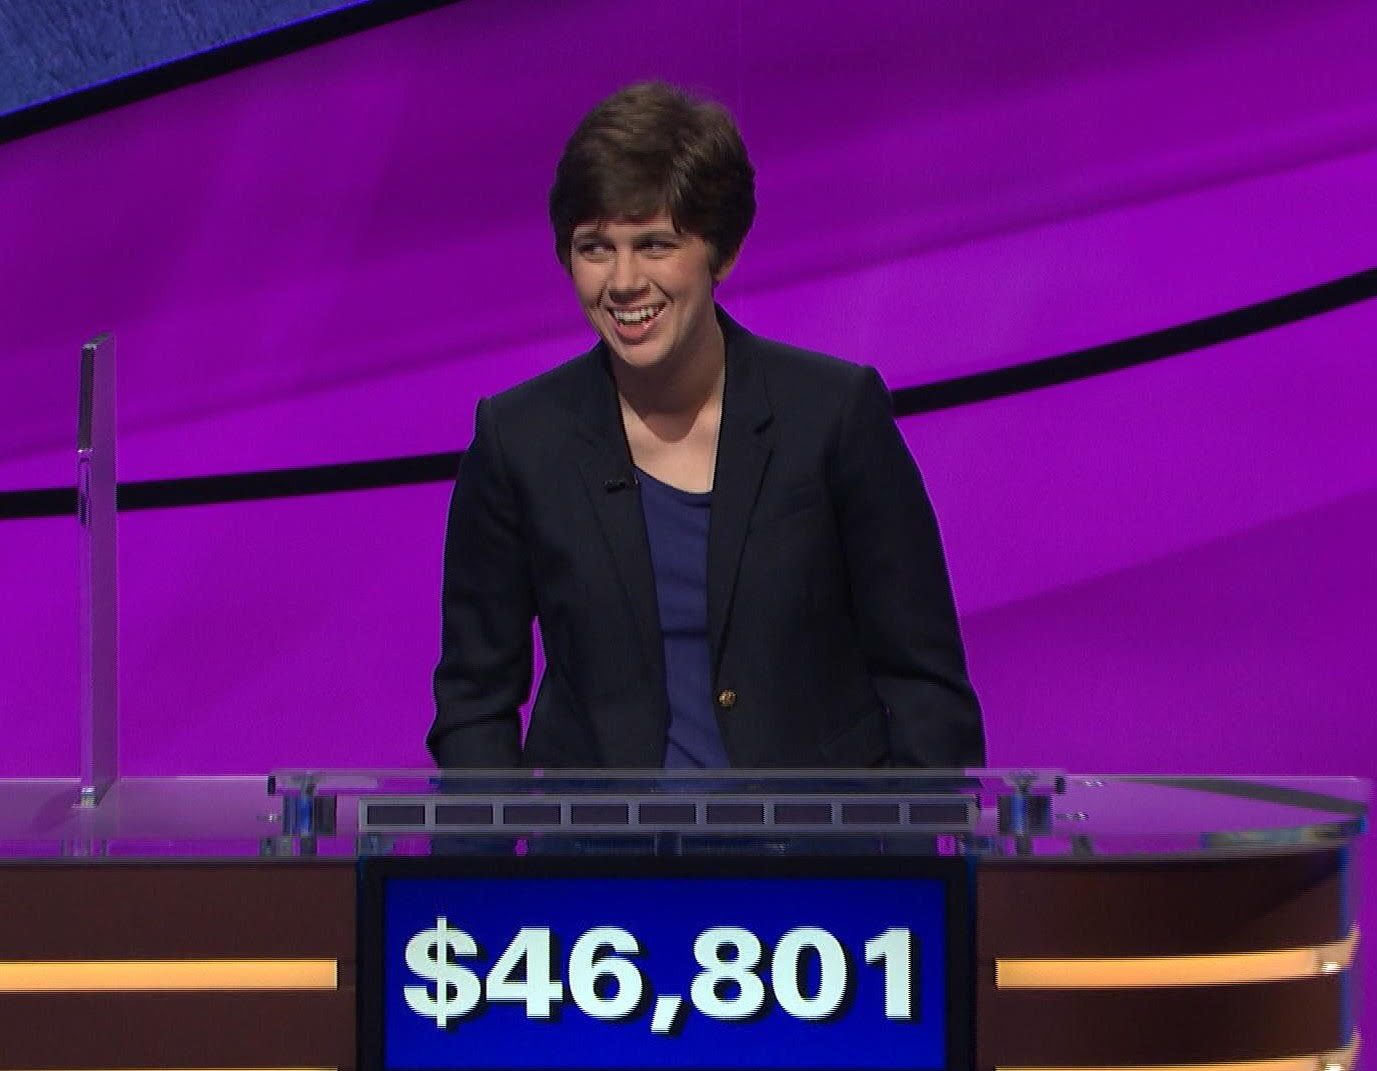 Emma Boettcher, 27, a University of Chicago librarian, beat reigning champ James Holzhauer on 'Jeopardy!' Monday evening before he could surpass Ken Jennings' $2.52 million record.